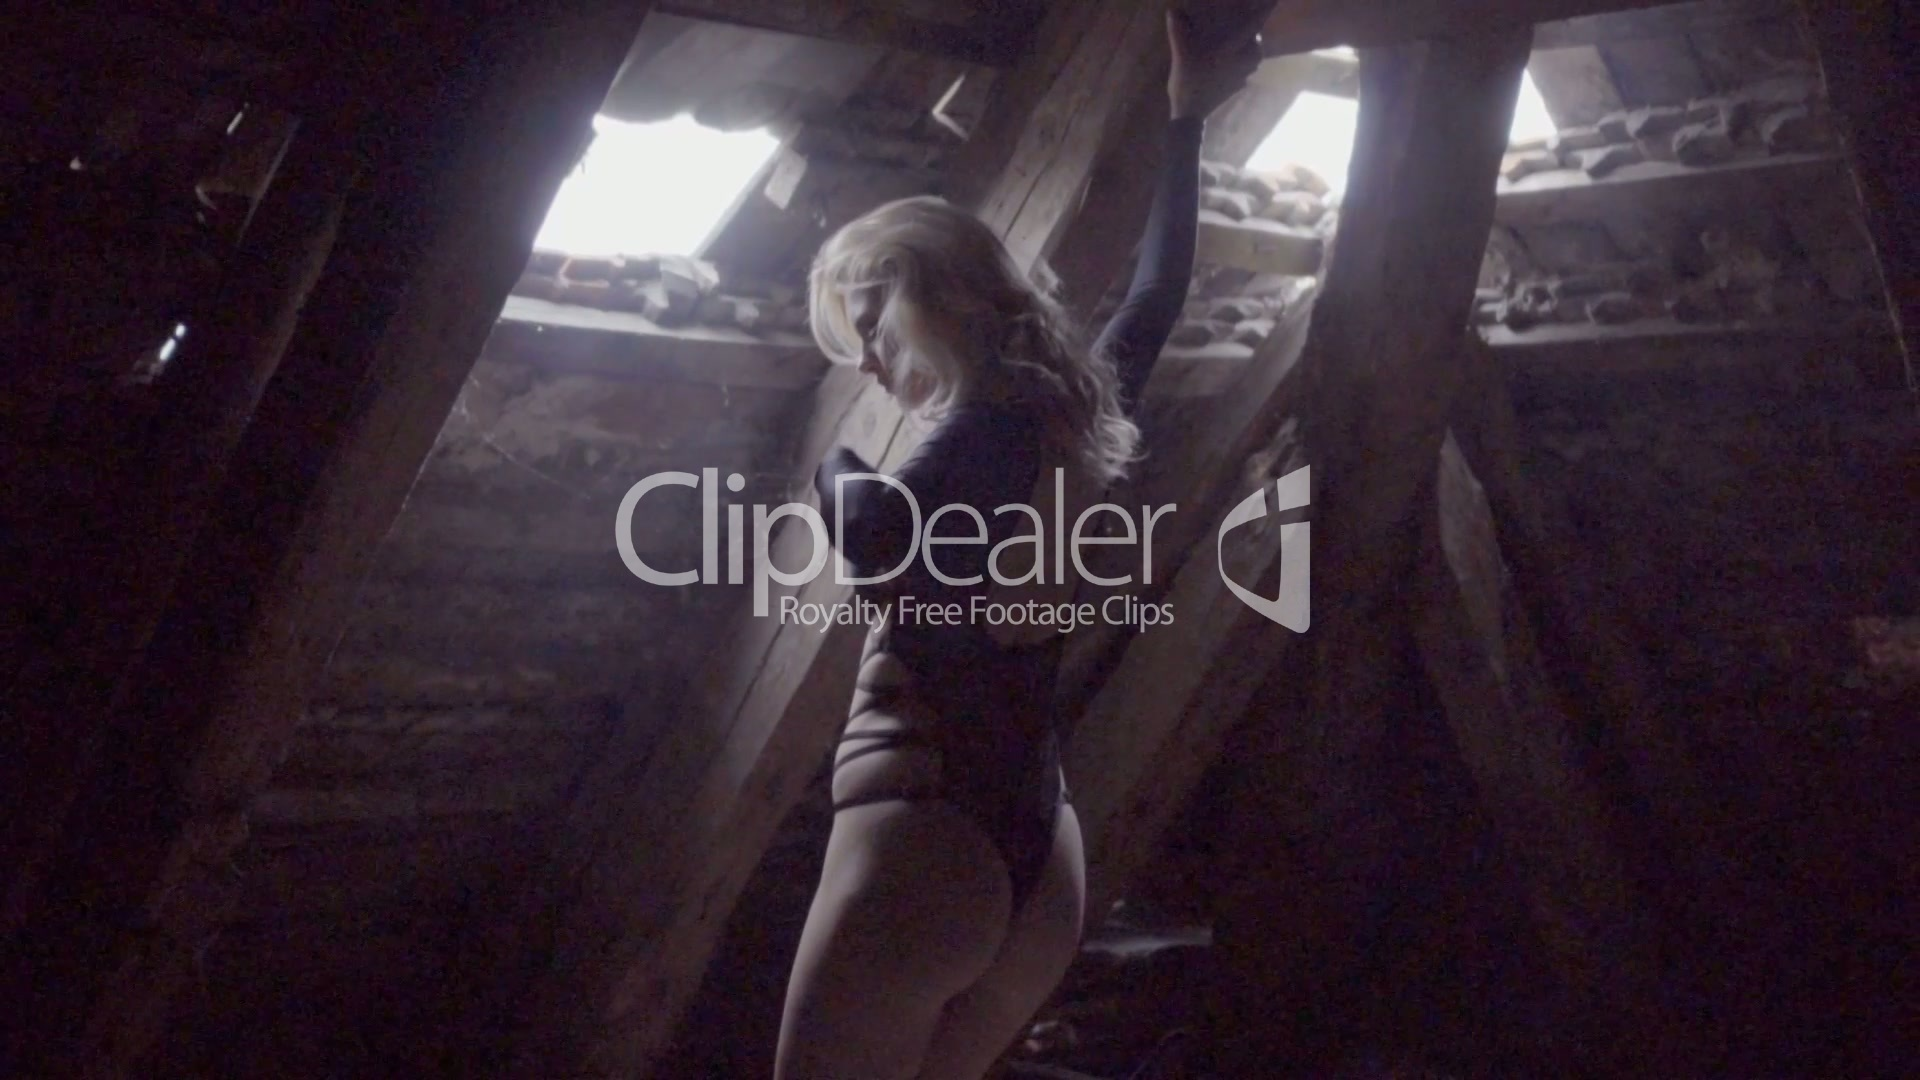 Clips Sexy Blonde Woman Dancing Royalty Free